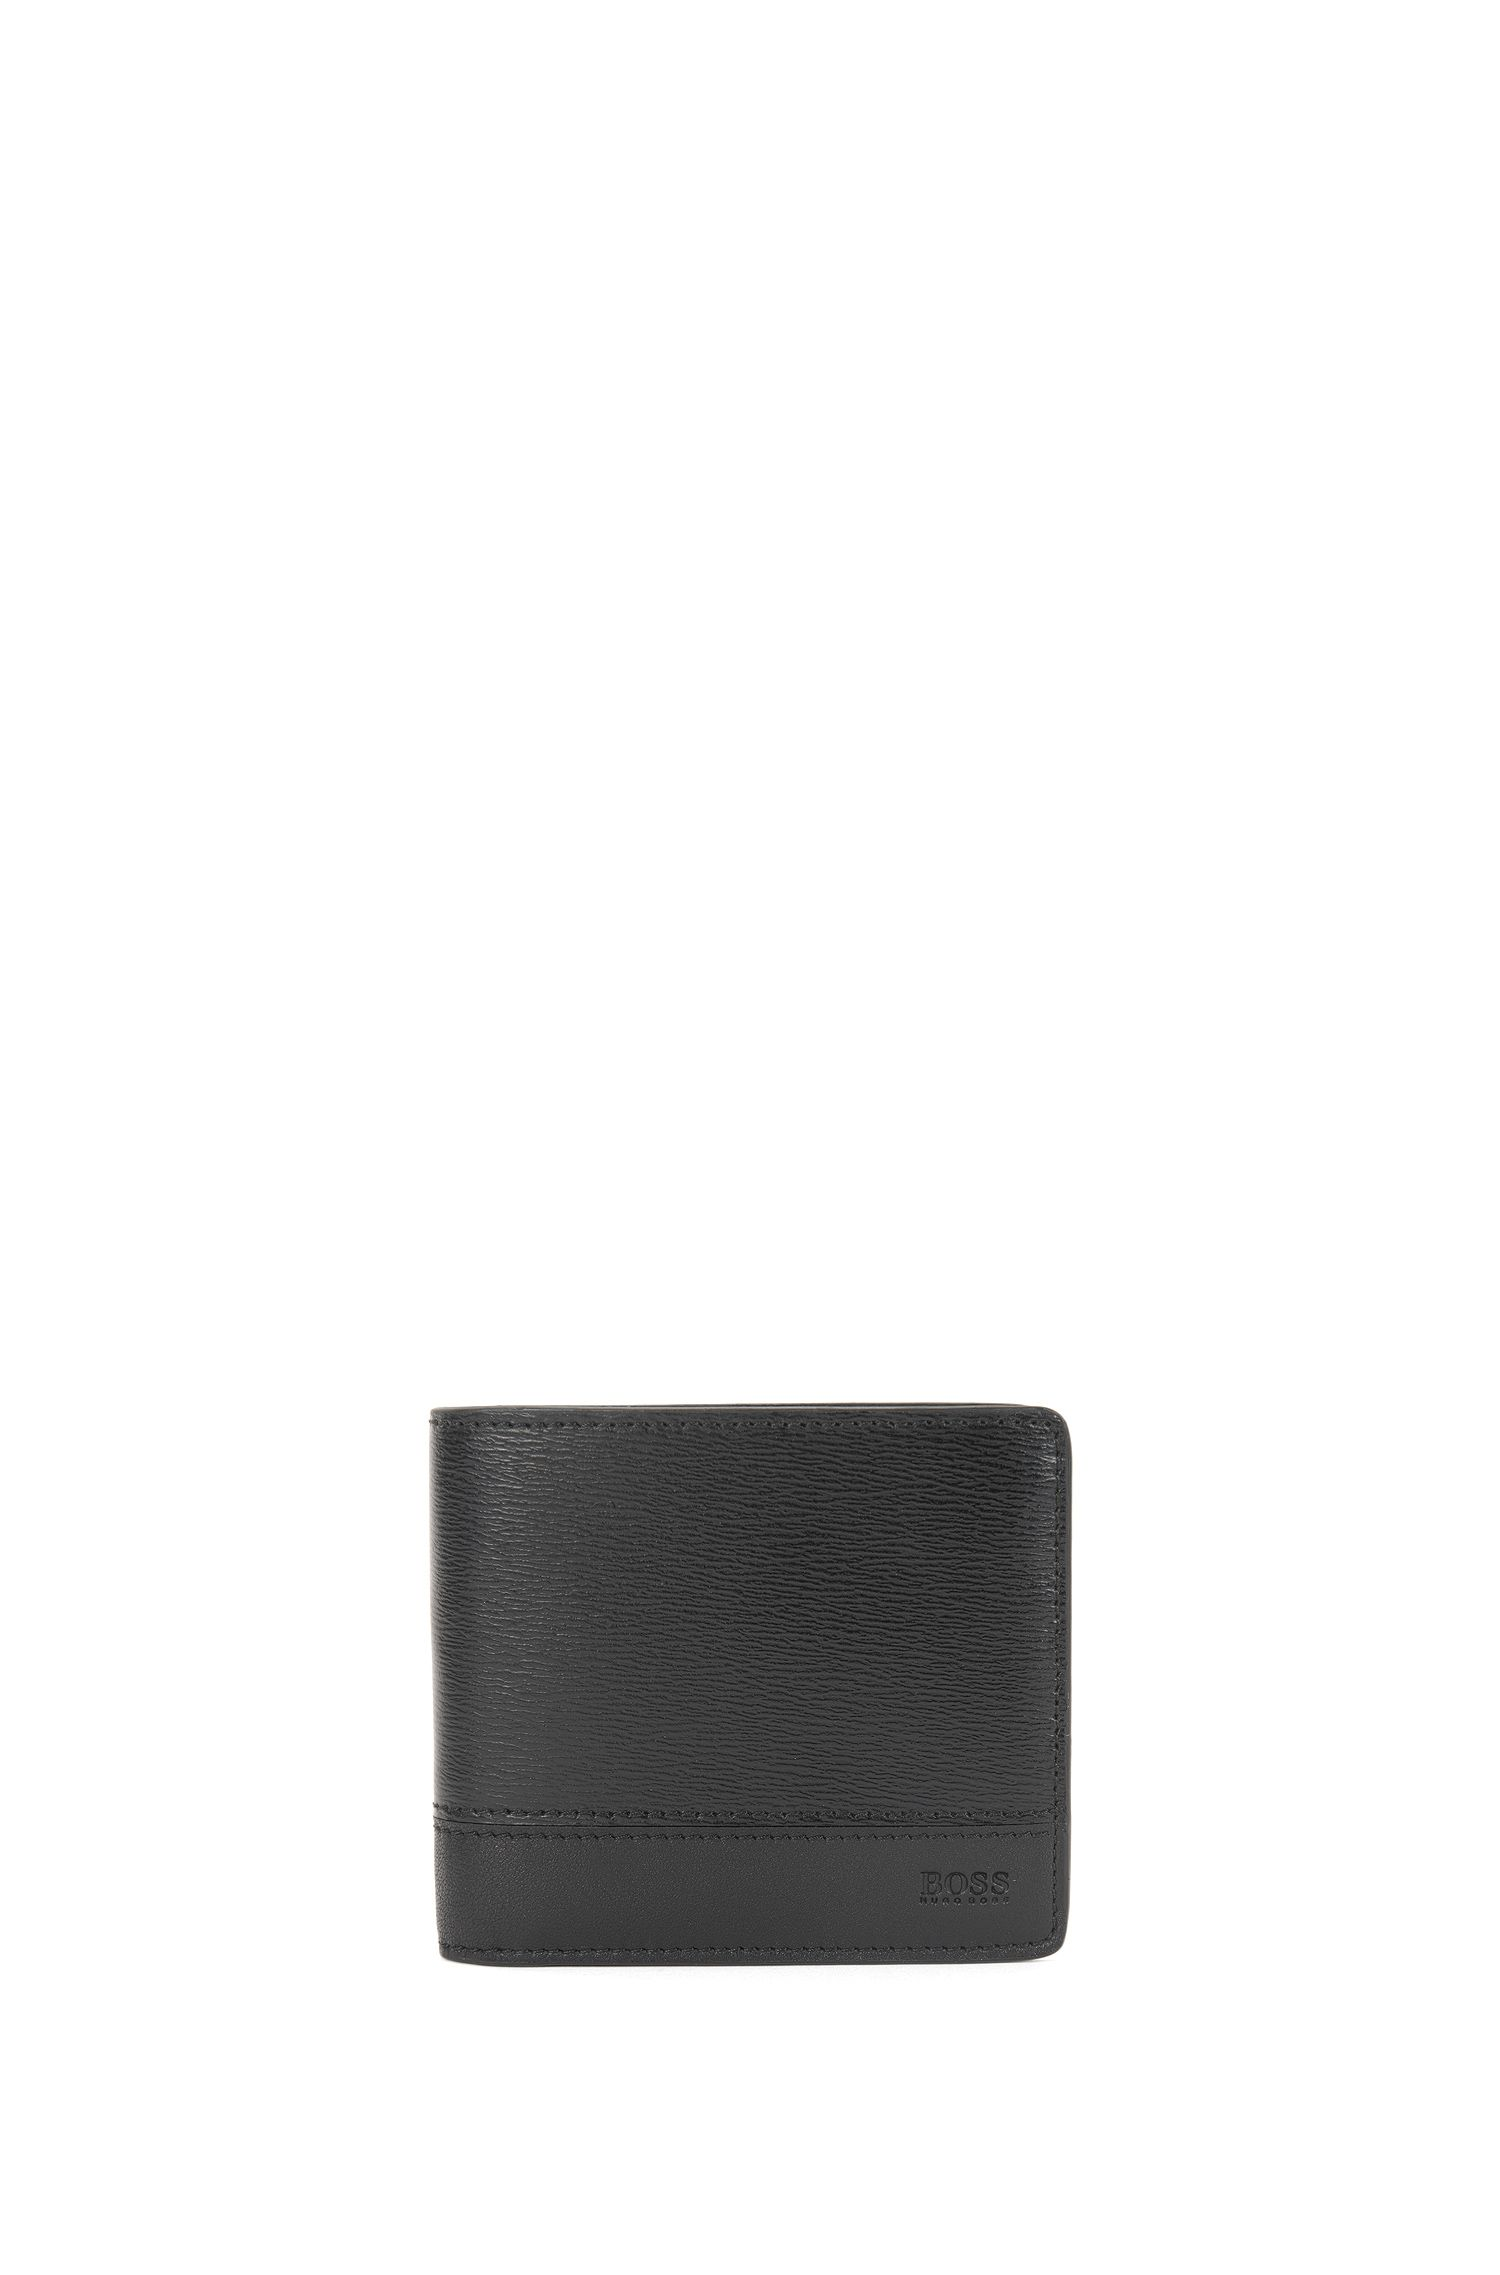 Leather Wallet With Coin Pouch | Focus 4 CC Coin